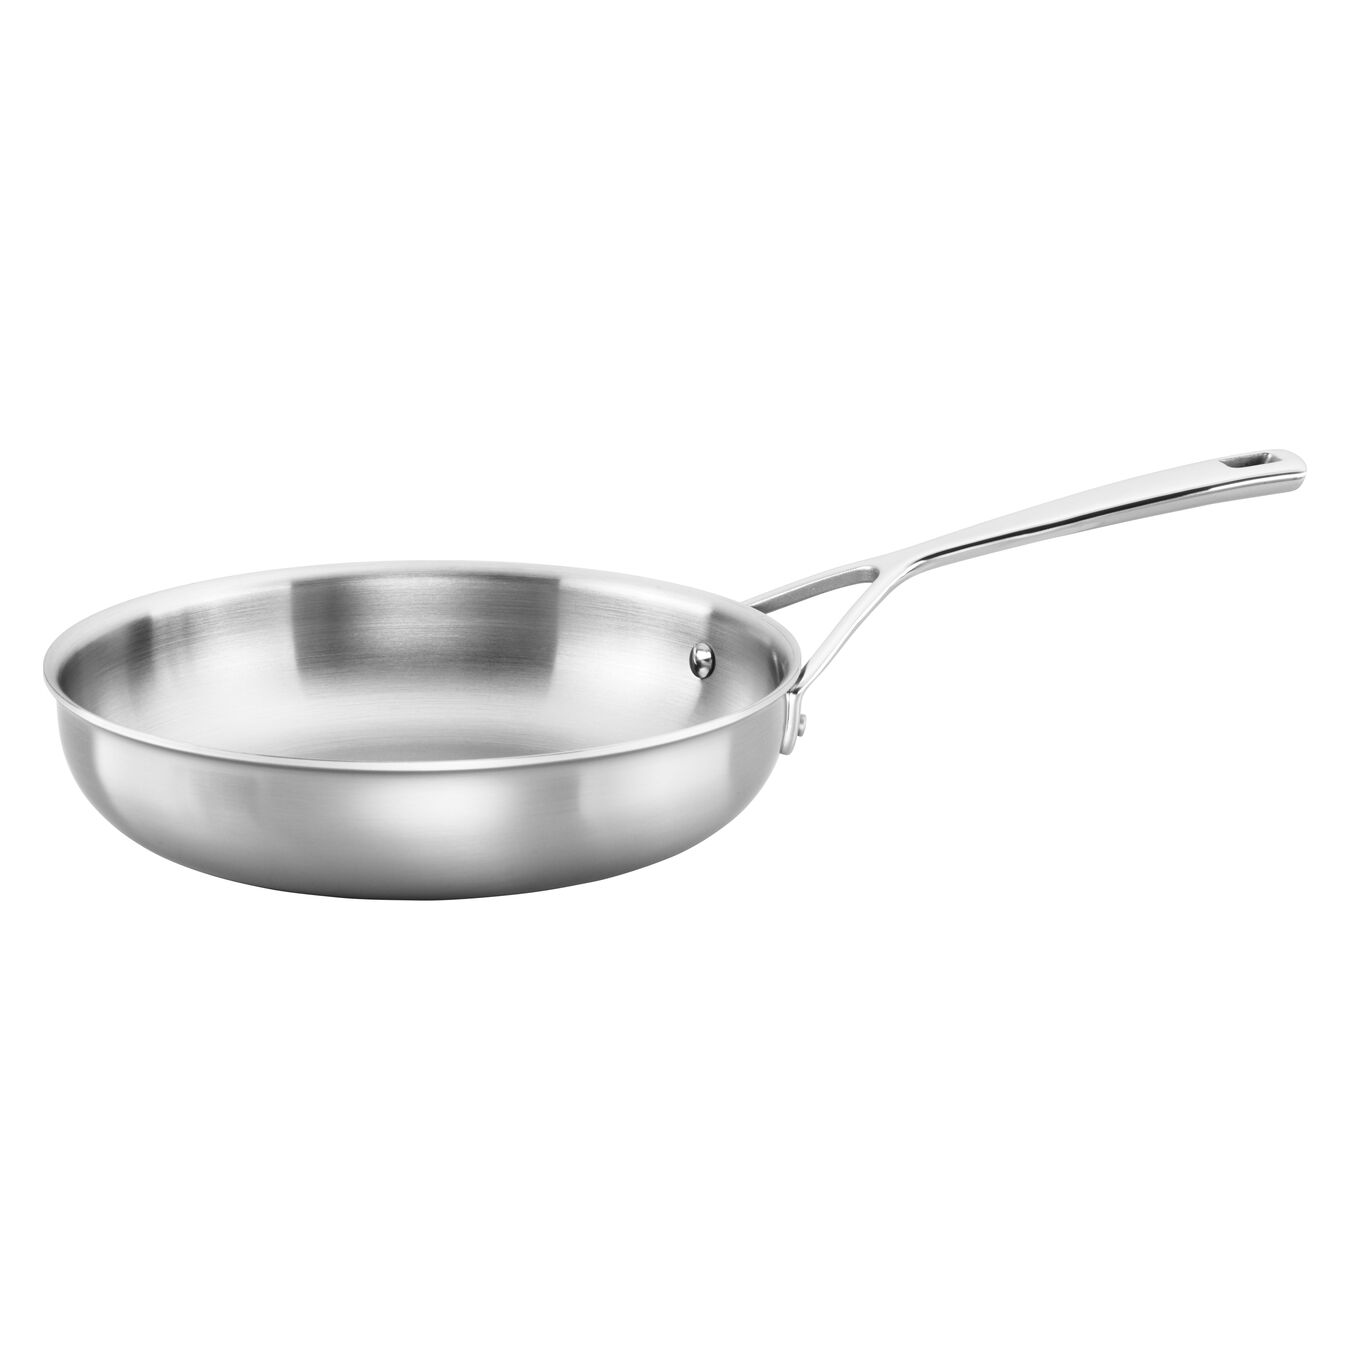 24 cm 18/10 Stainless Steel Poêle,,large 2